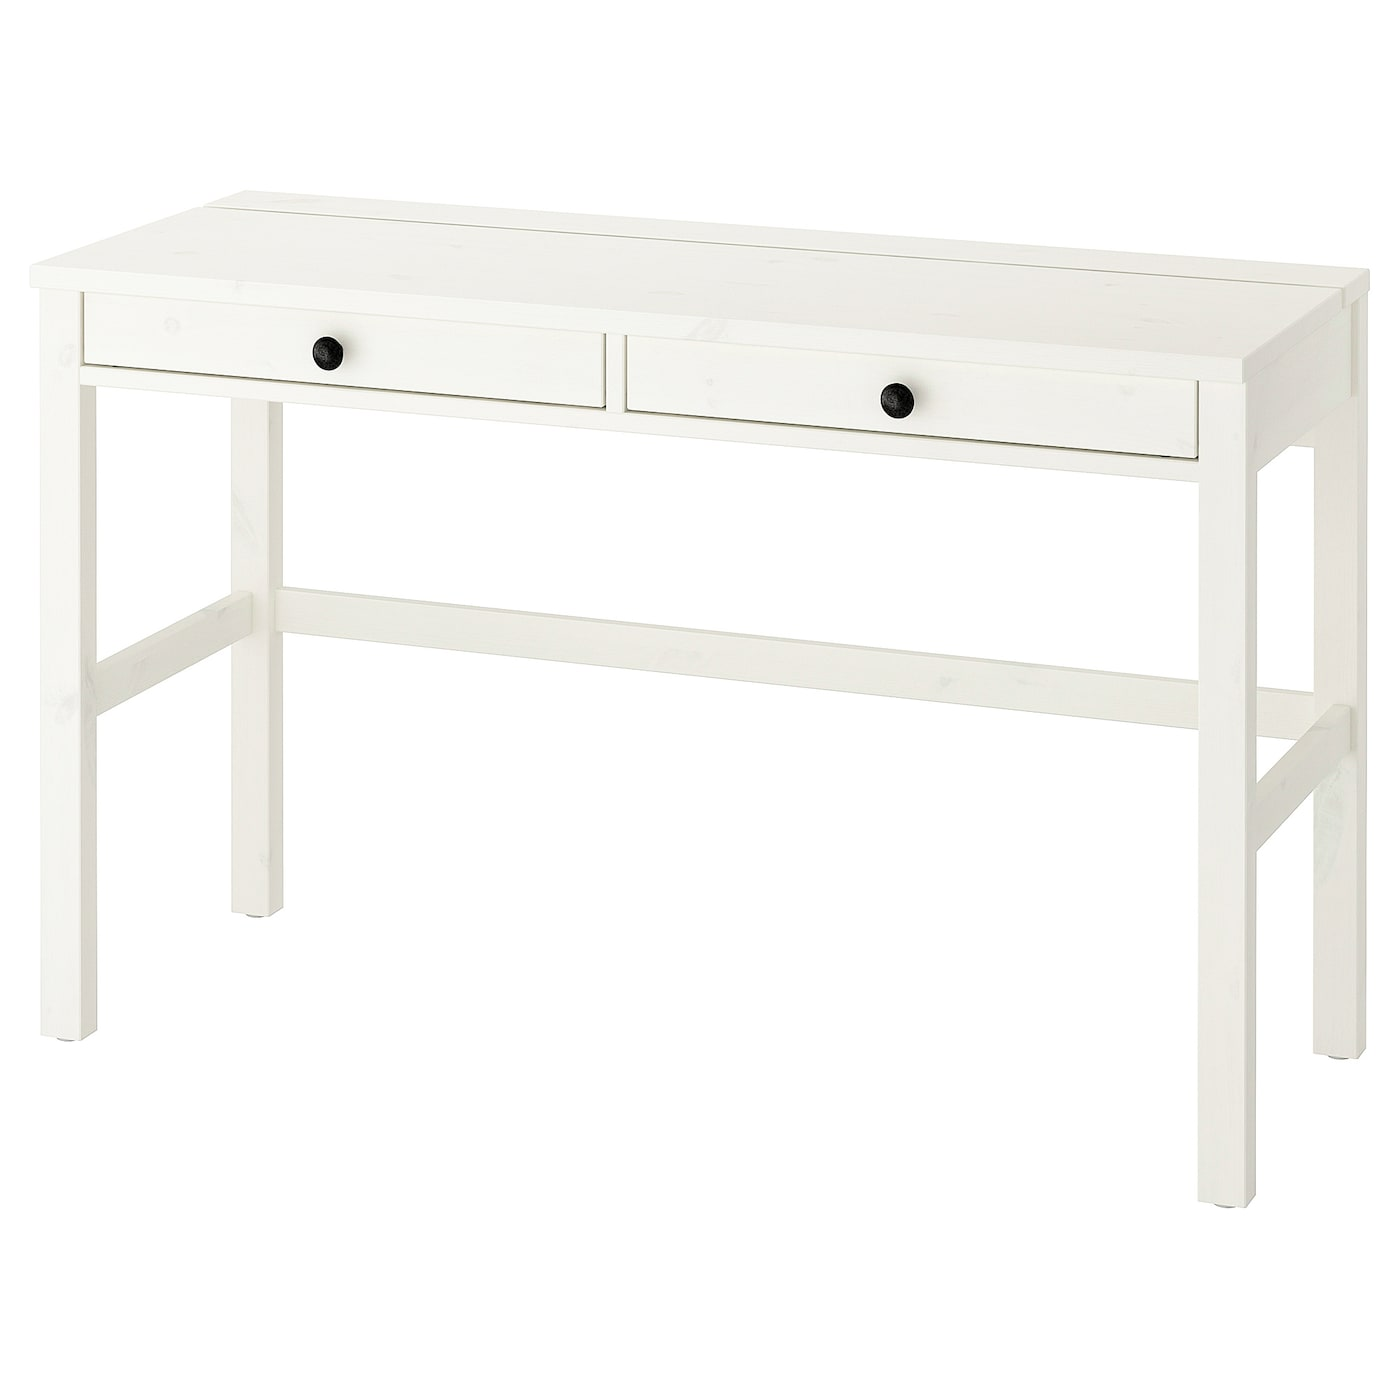 s-desk-with-2-drawers-white-stain__0736012_PE740339_S5